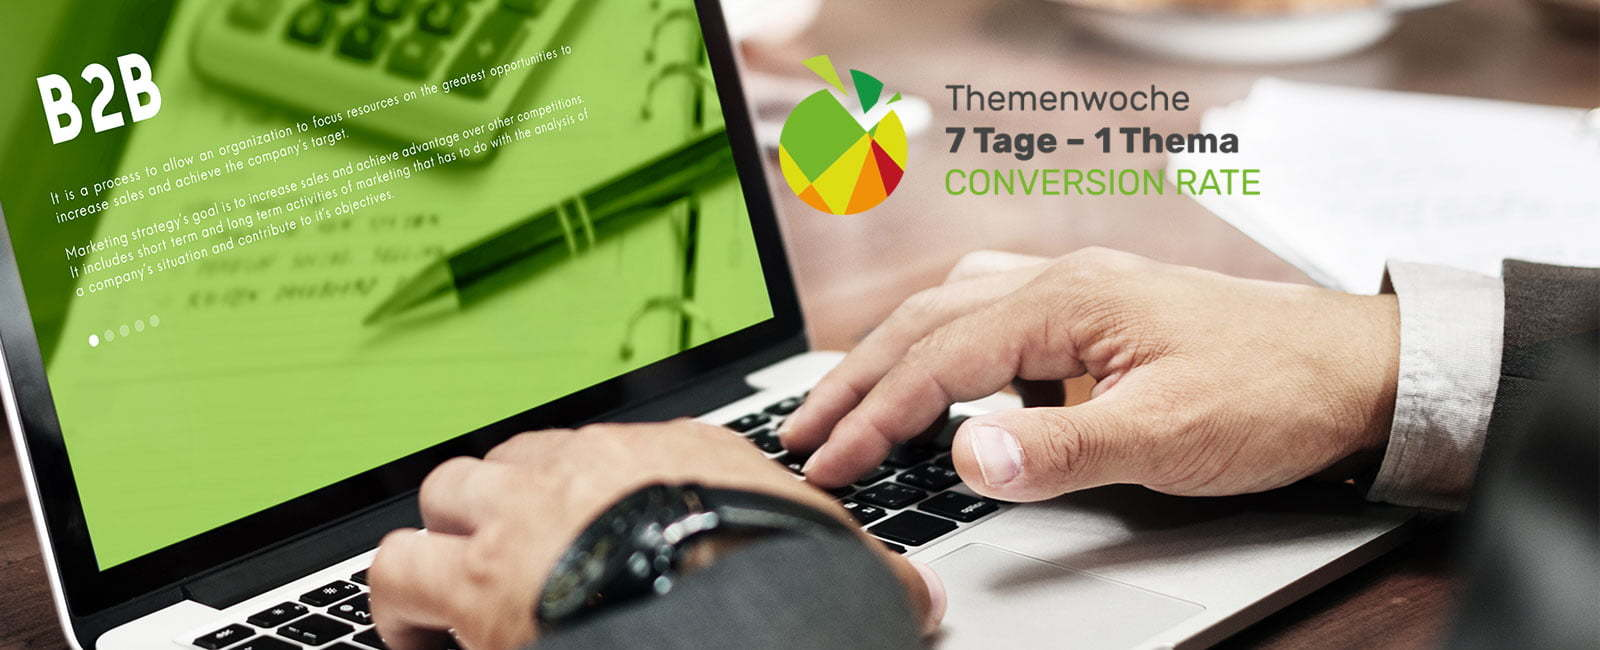 econsor Themenwoche Conversion Rate B2B